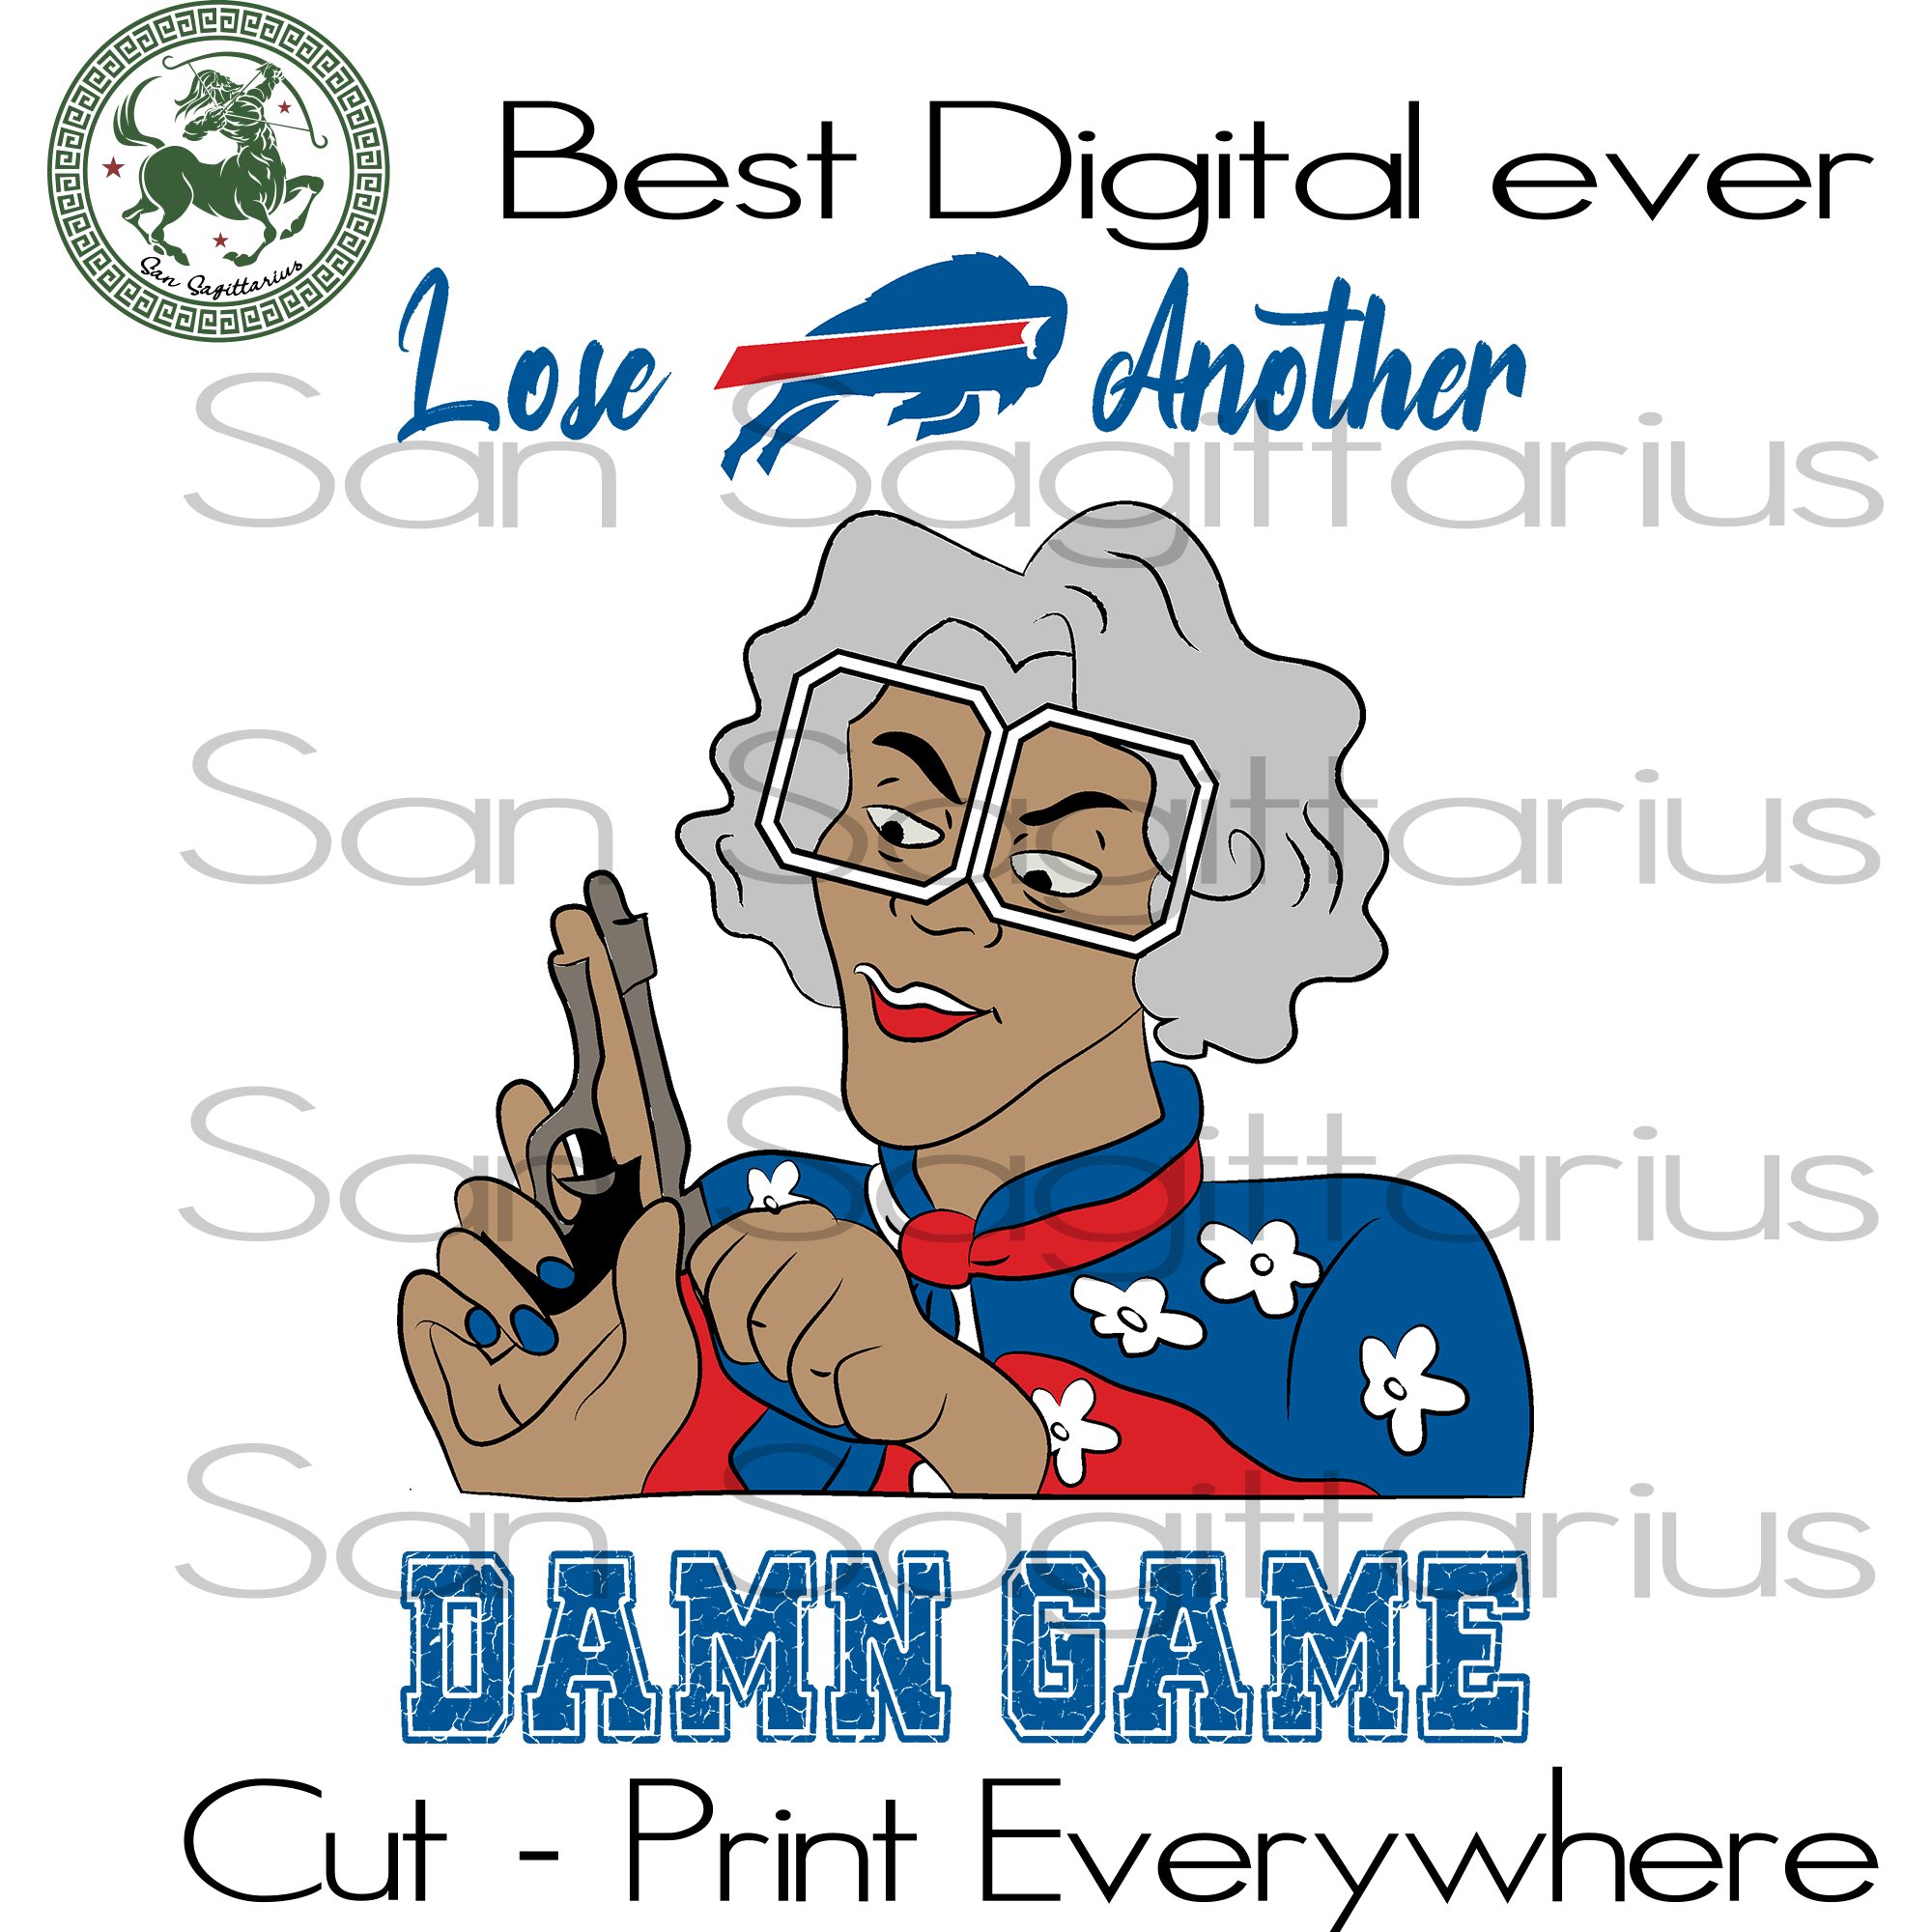 Madea Bills another dame game, Buffalo Bills Svg, Football Team Logo Svg, Buffalo Bills Logo, Buffalo Bills Football, Buffalo Bills Shirt, Football SVG Files For Silhouette, Cricut Files, SVG